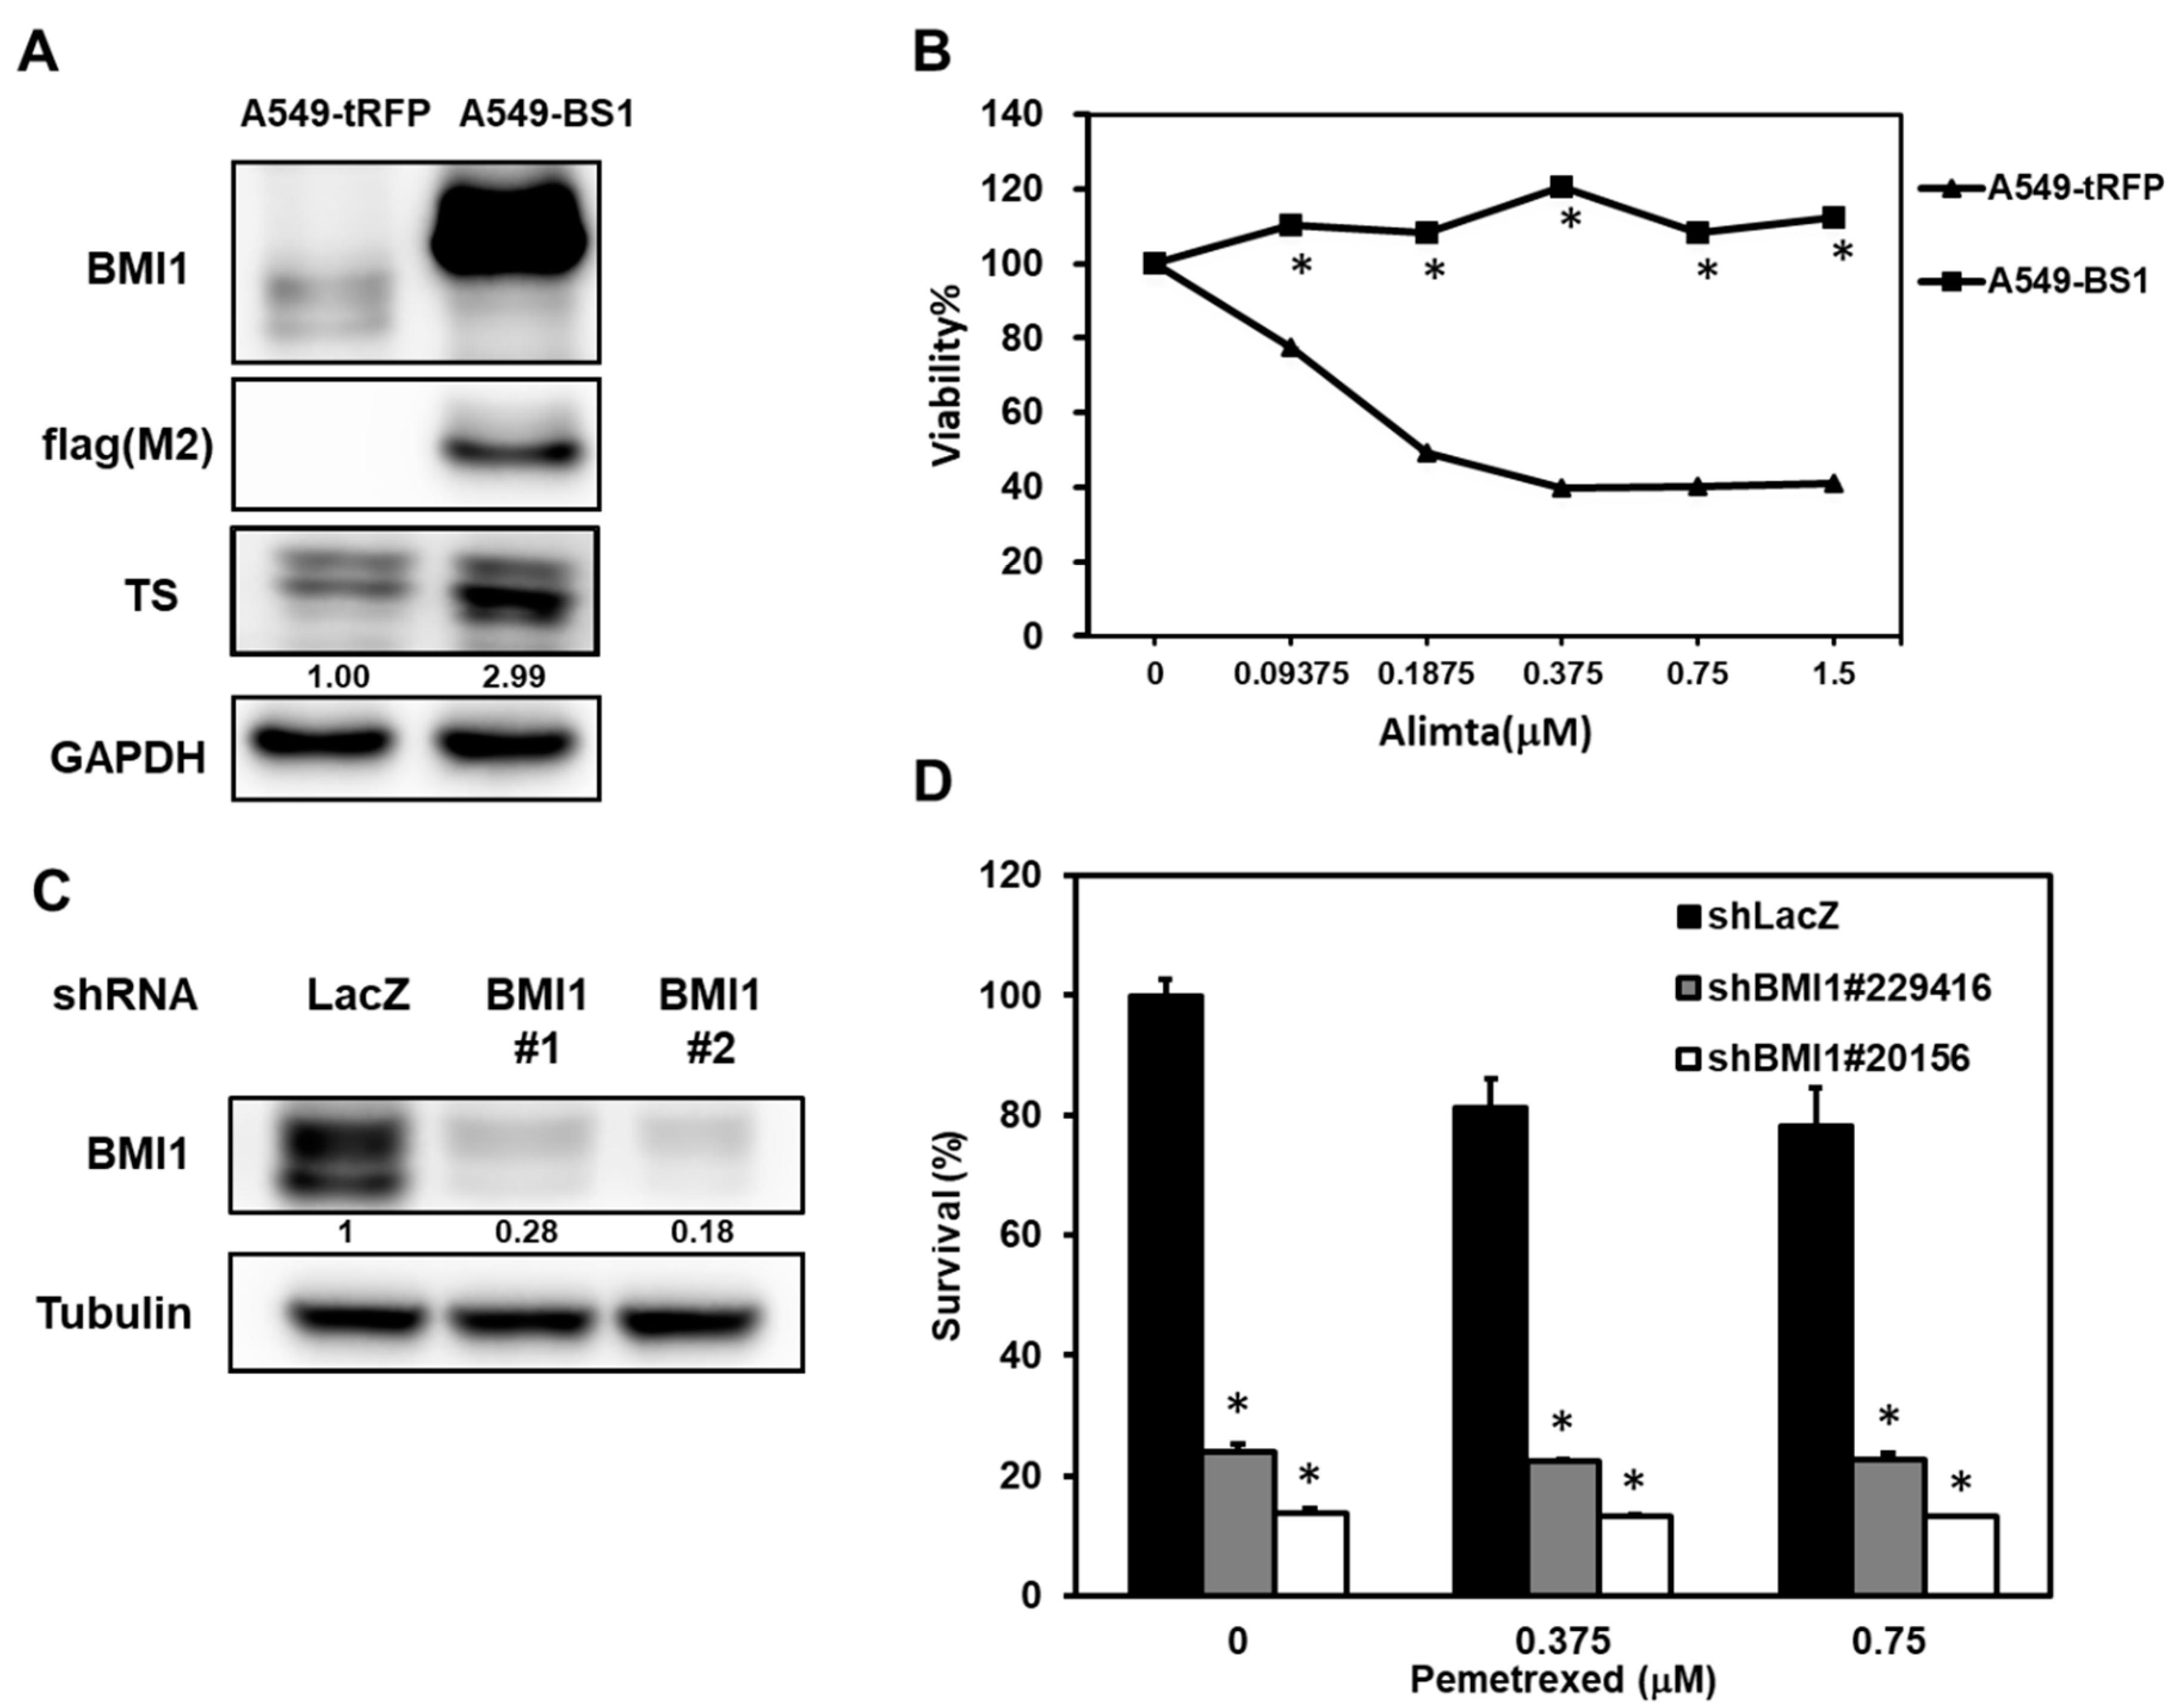 Cancers Free Full Text Bmi1 Mediated Pemetrexed Resistance In Non Small Cell Lung Cancer Cells Is Associated With Increased Sp1 Activation And Cancer Stemness Html